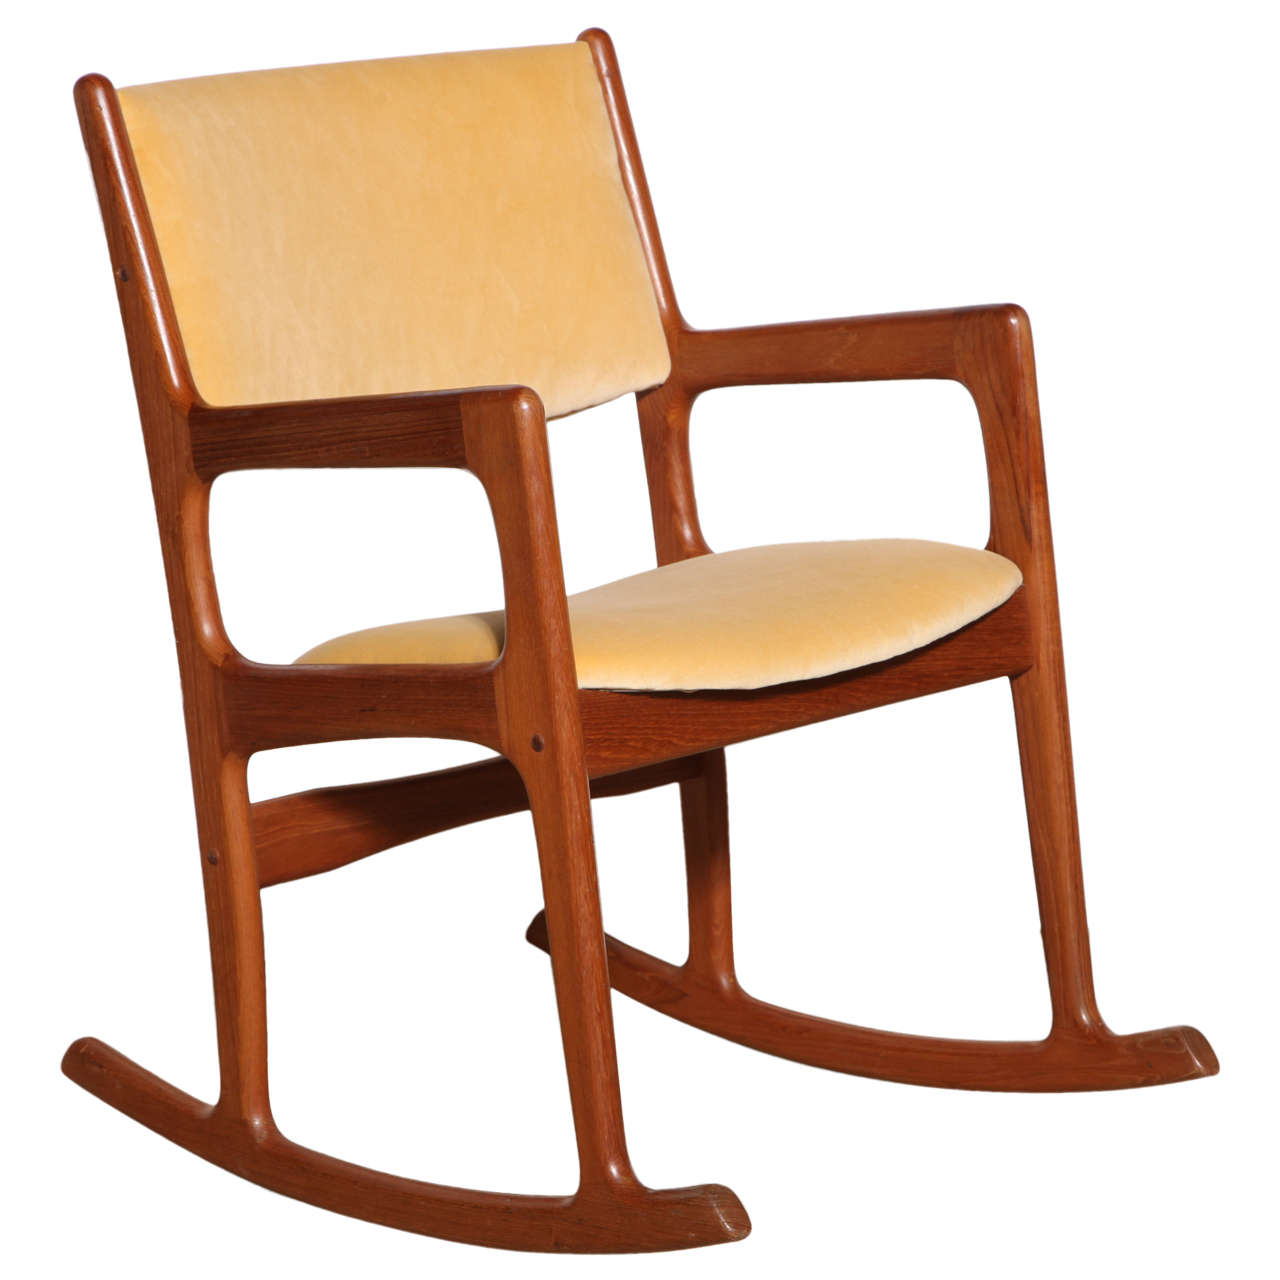 this danish modern teak rocking chair is no longer available